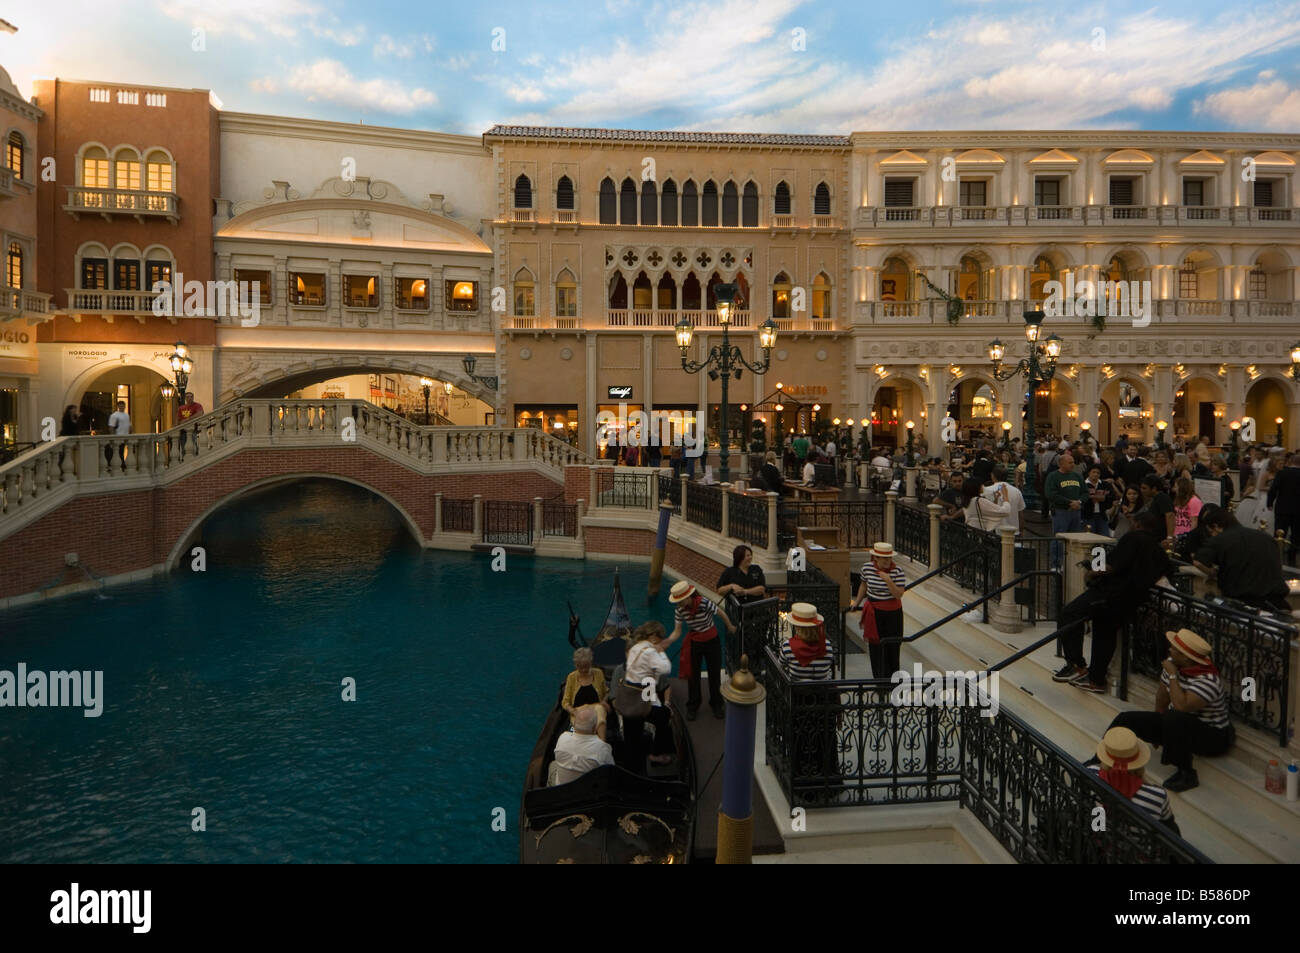 Inside the Venetian Hotel complete with gondaliers and a recreated Venice, Las Vegas, Nevada - Stock Image